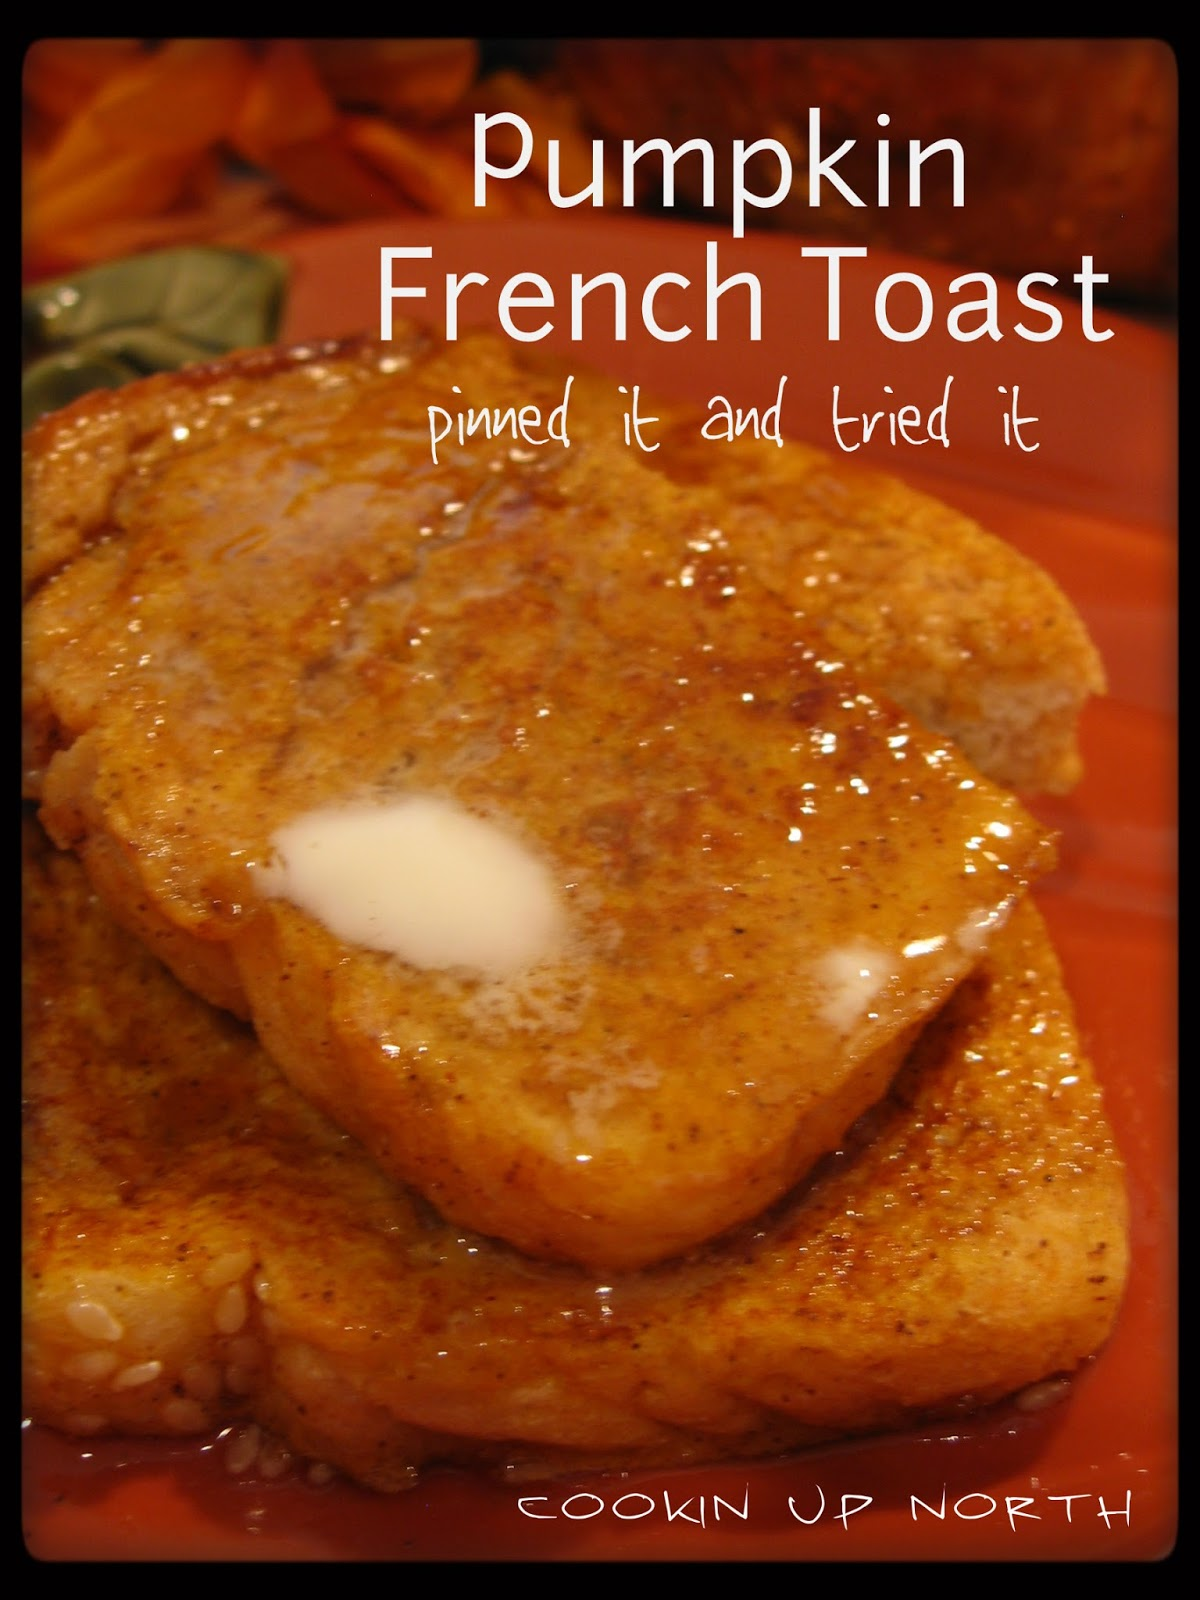 cookin' up north: Pumpkin French Toast ..pinned it and tried it